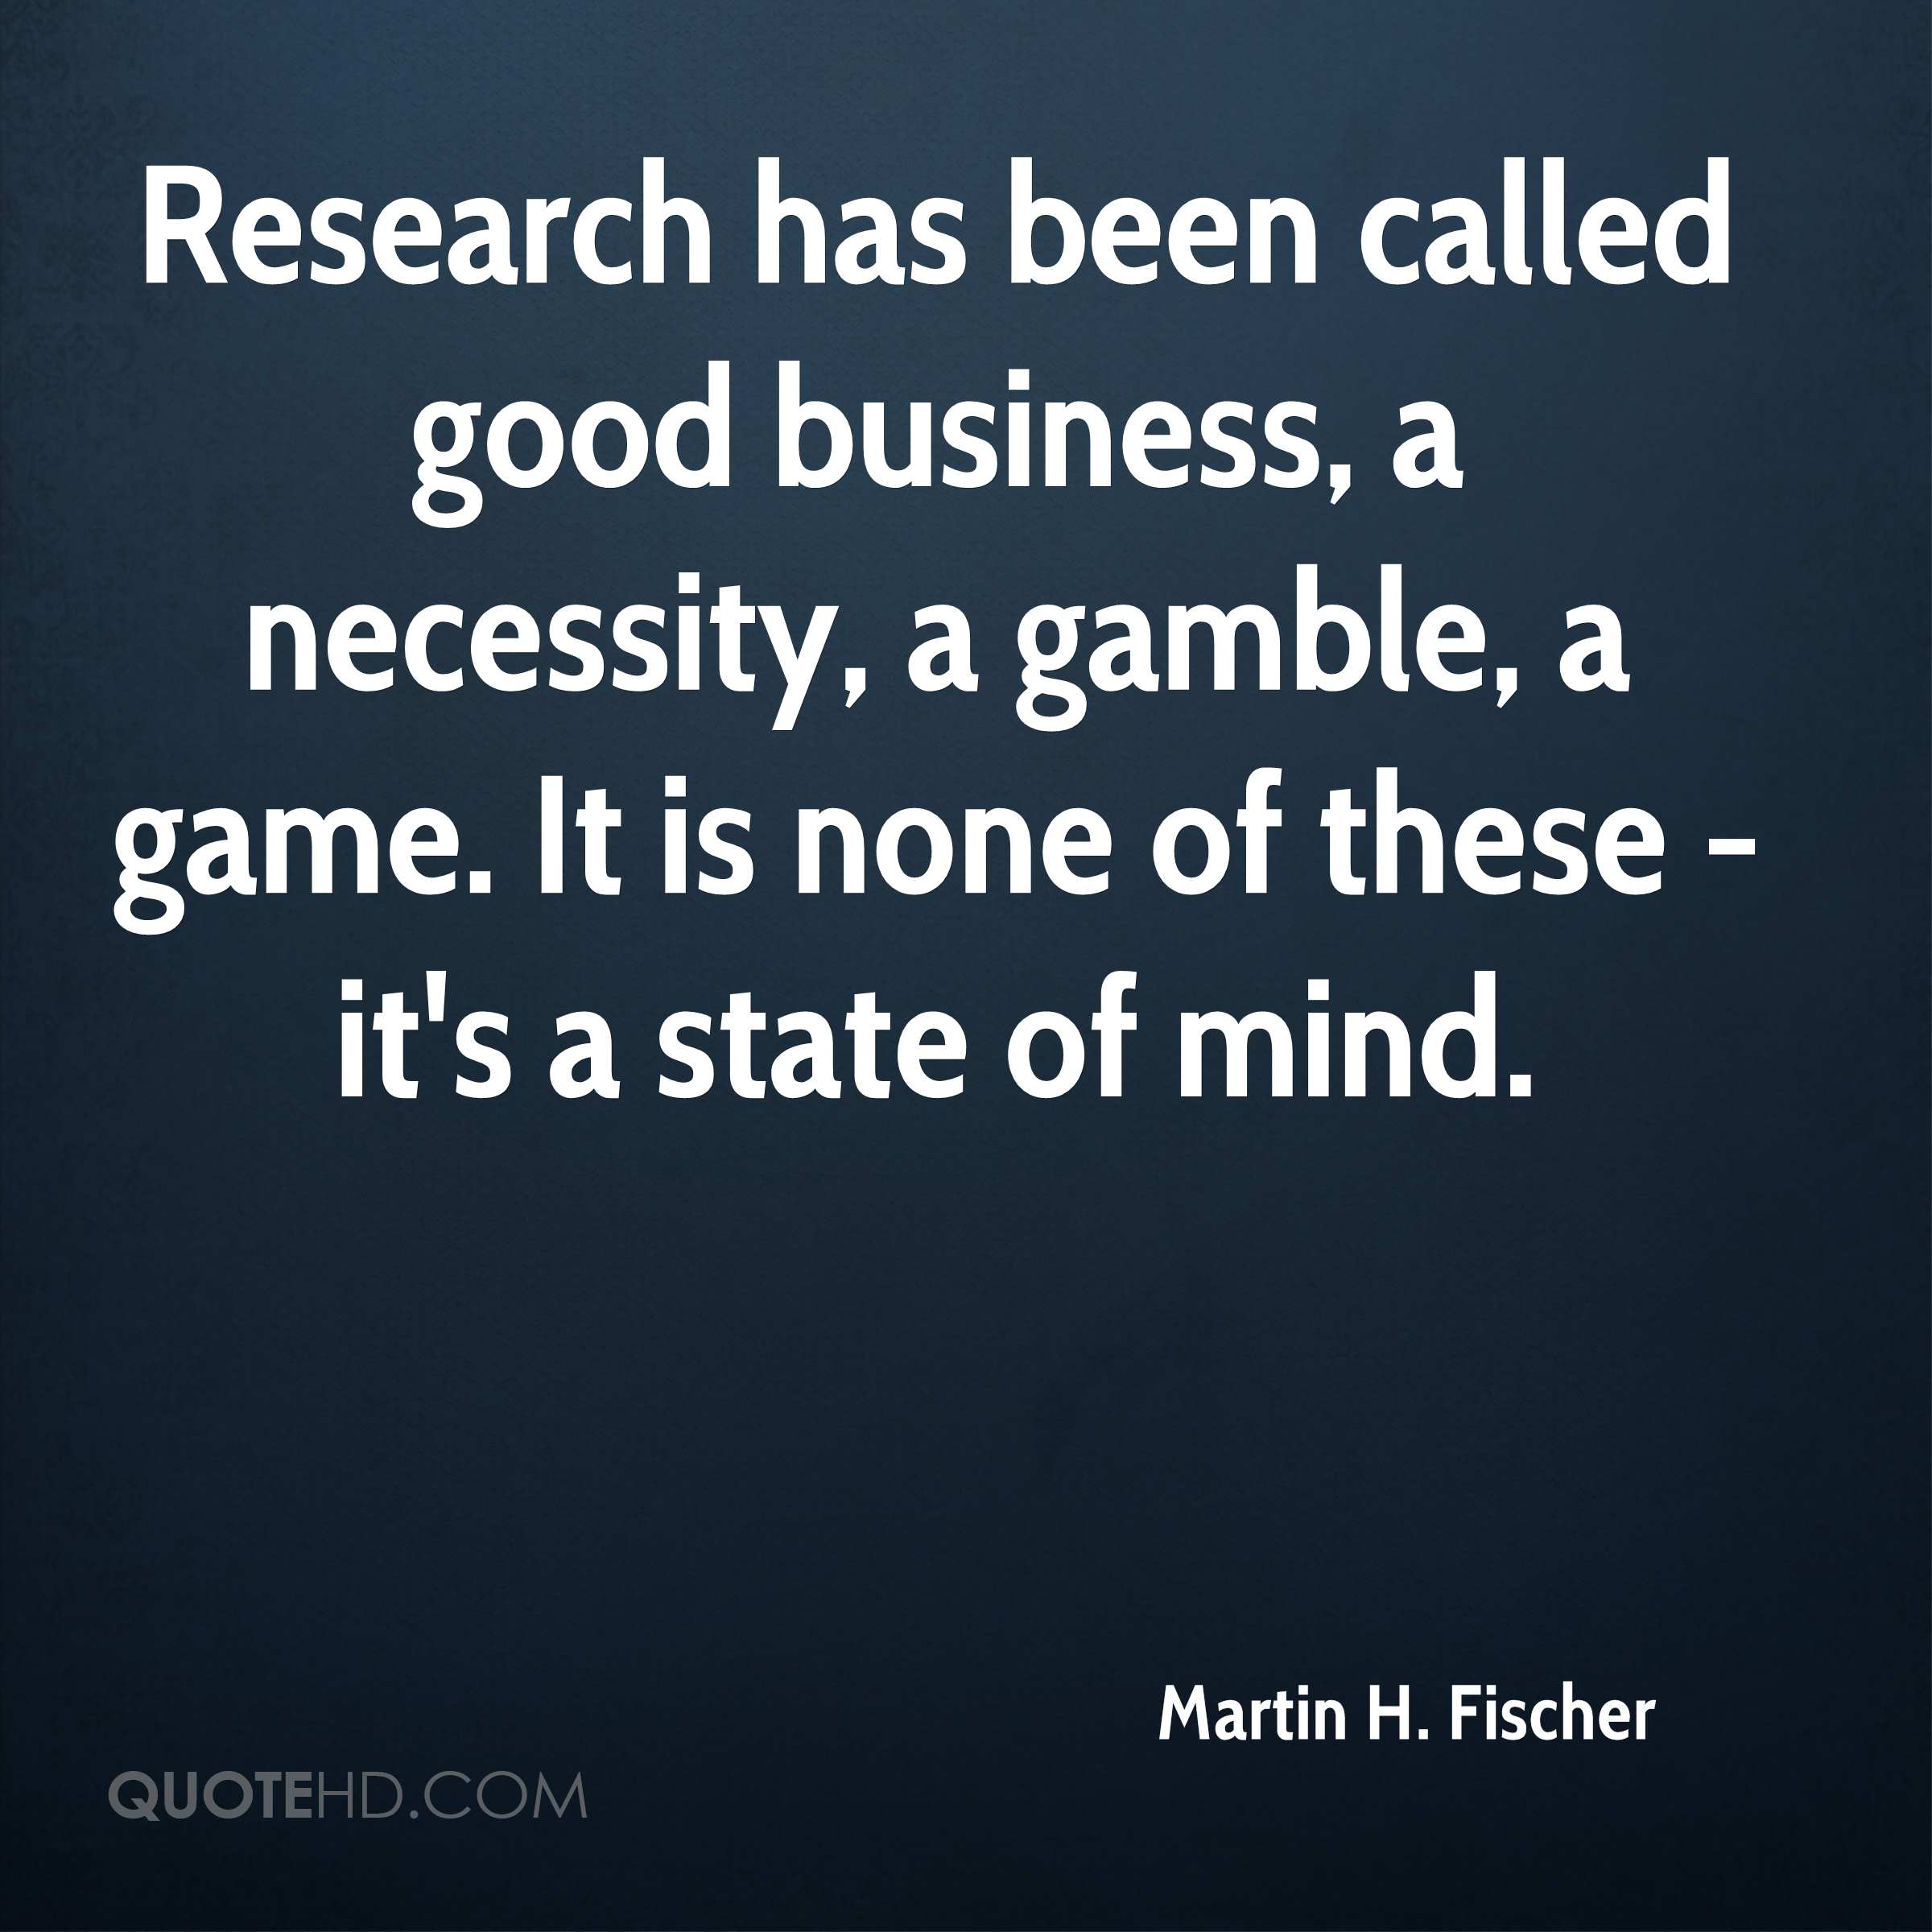 Research has been called good business, a necessity, a gamble, a game. It is none of these - it's a state of mind.